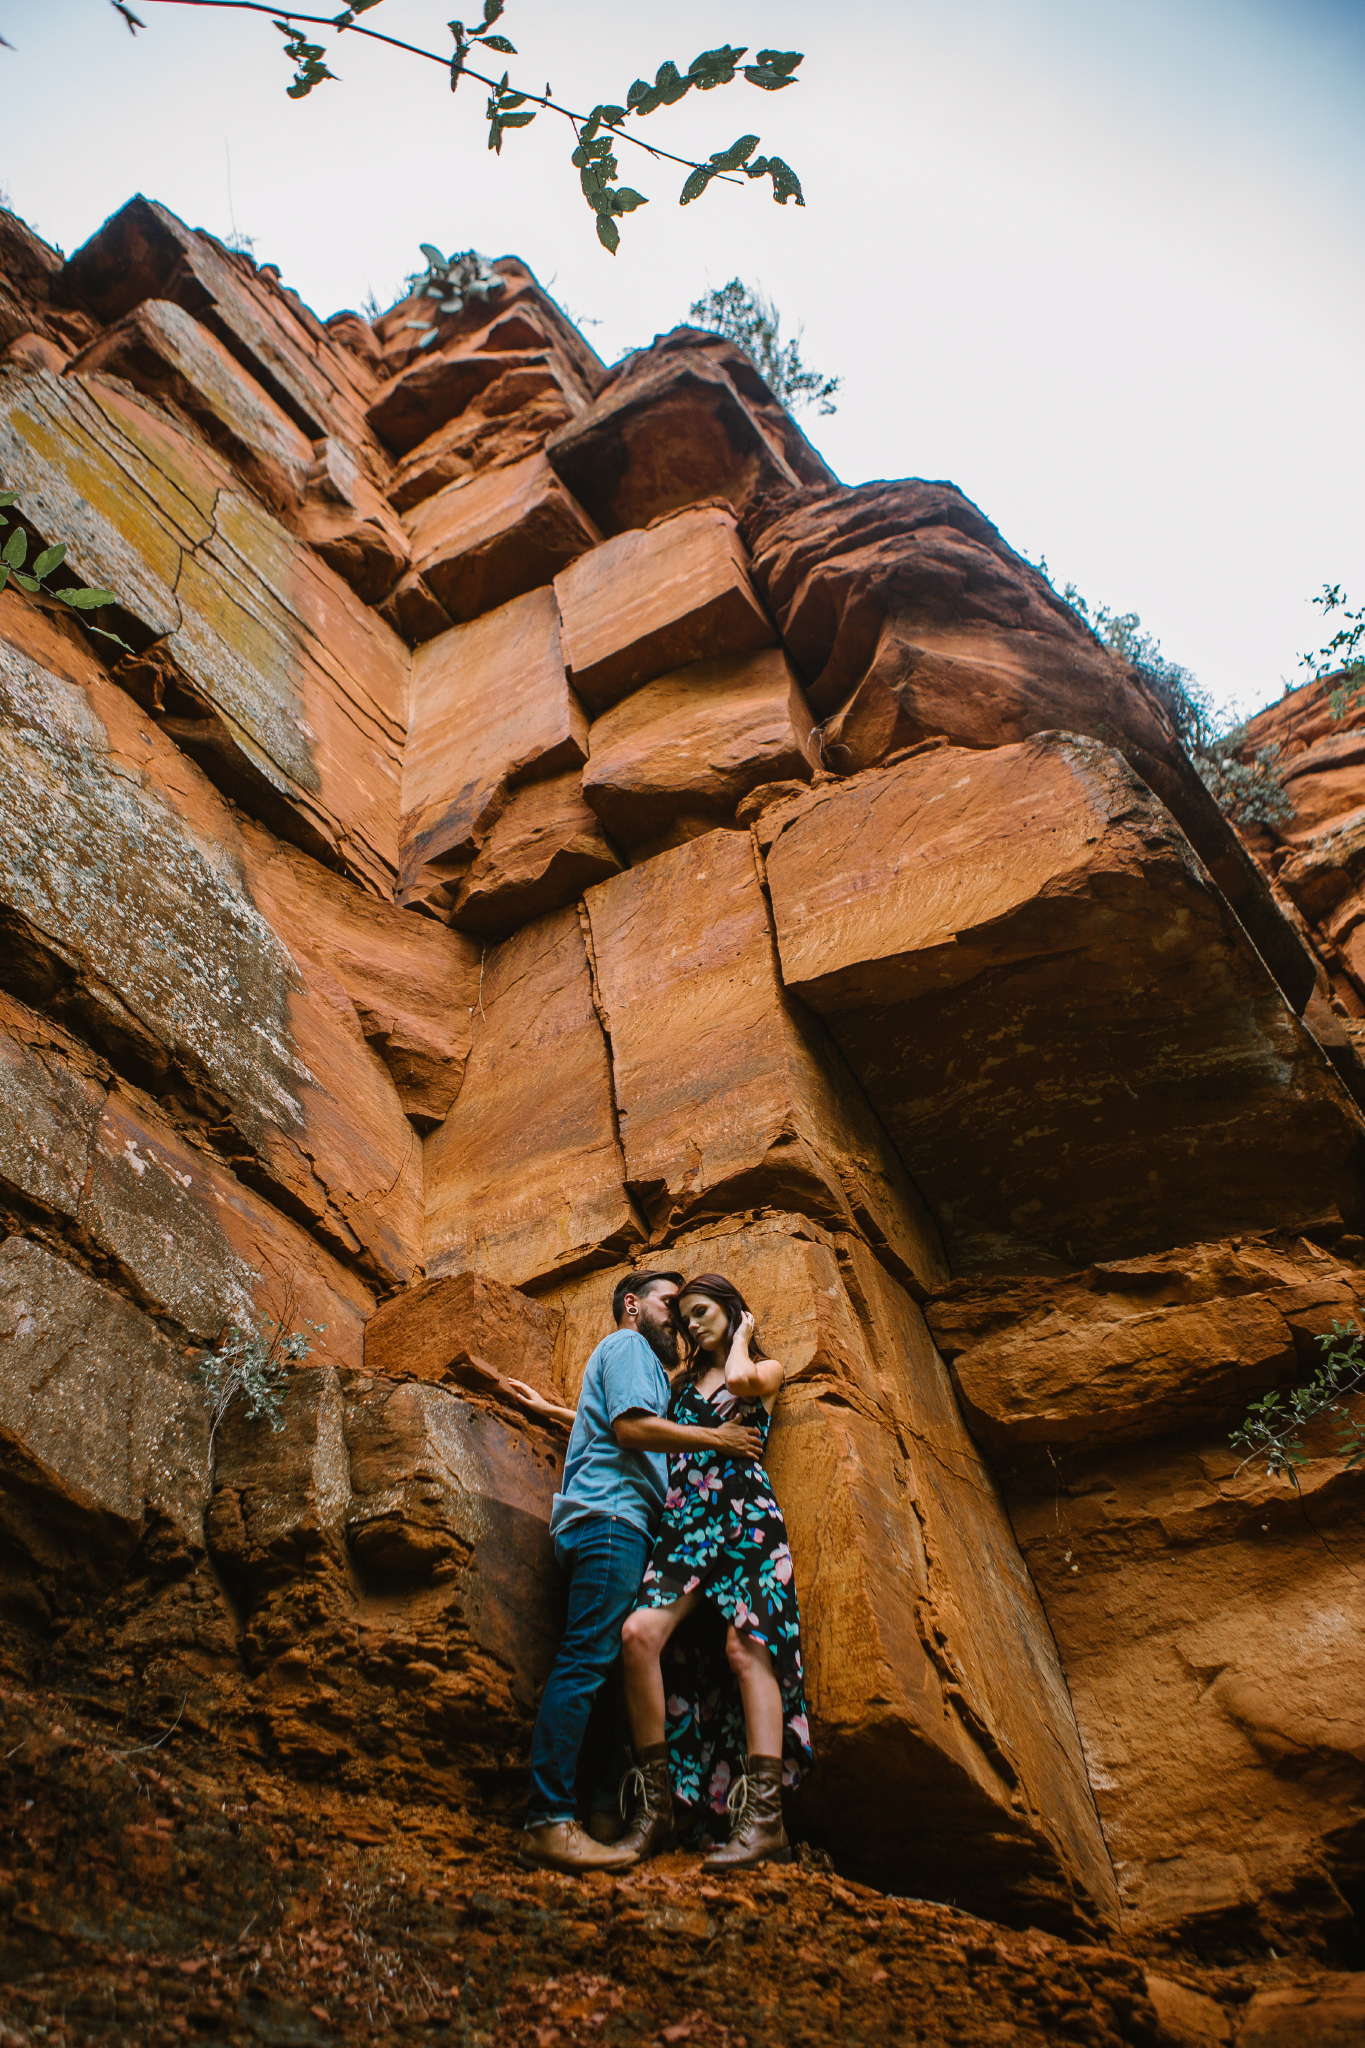 san diego wedding   photographer | bearded man in blue holding woman in black floral dress   against rock formation